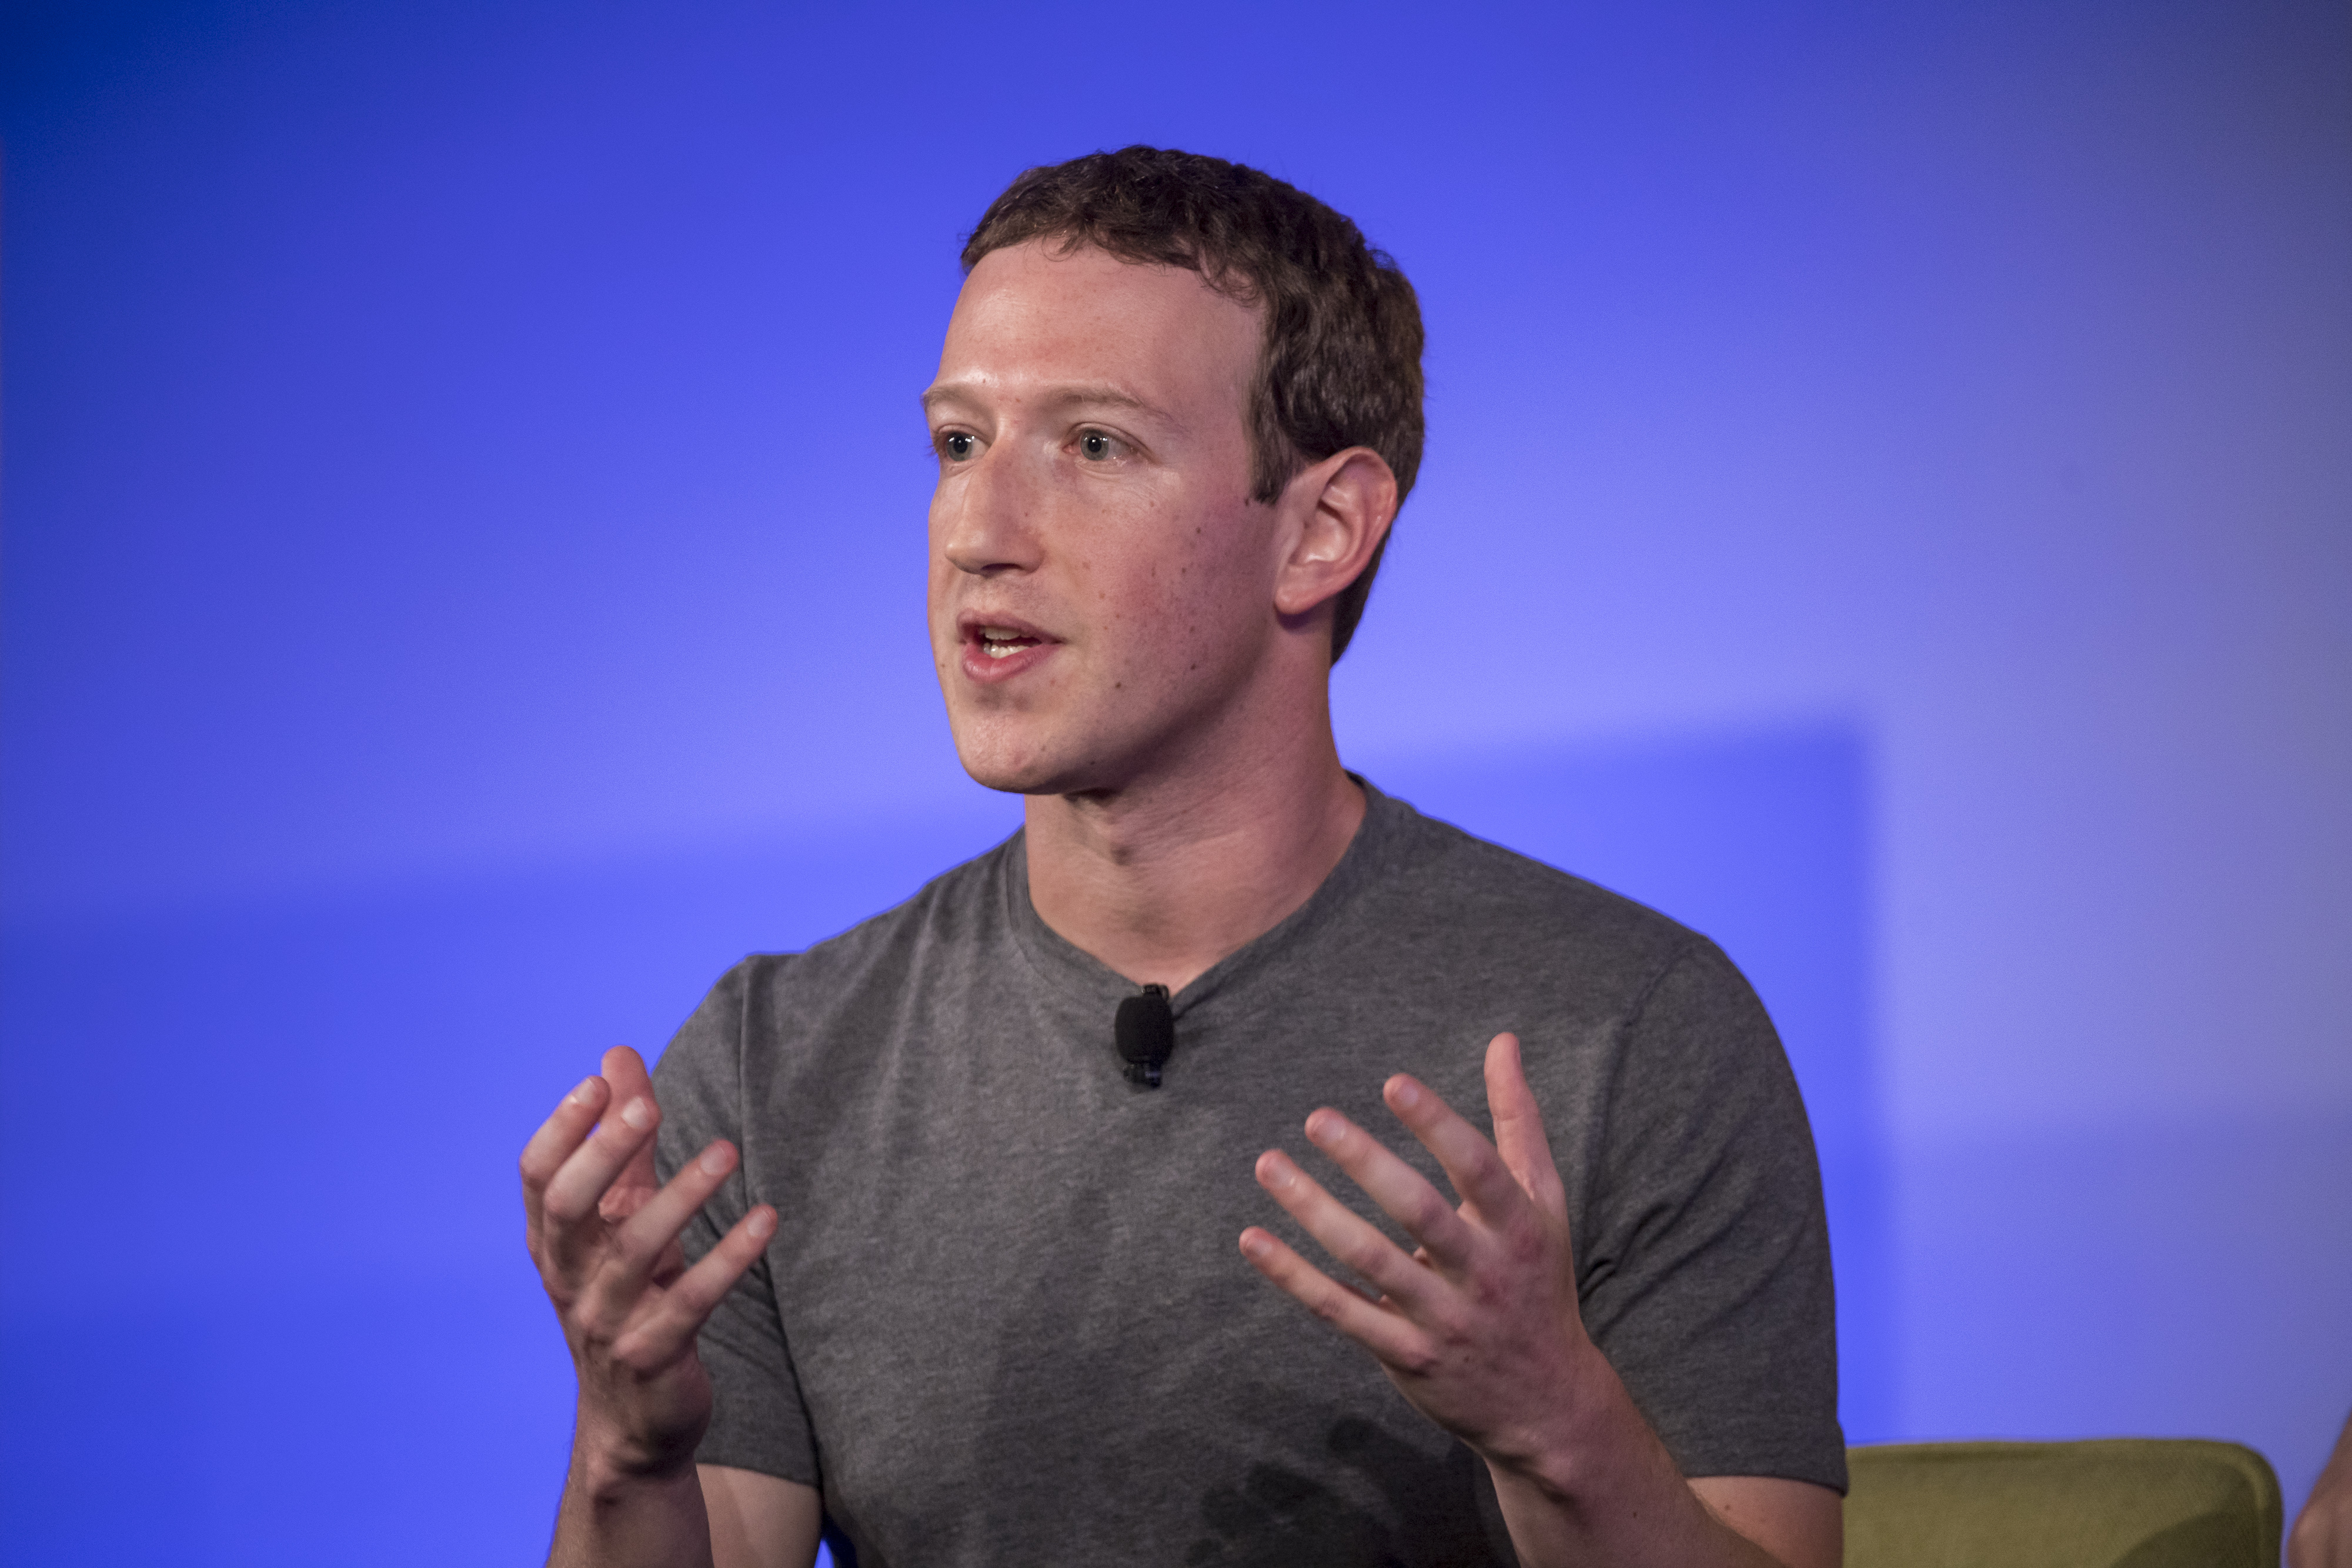 Mark Zuckerberg, chief executive officer and founder of Facebook Inc., at the Techonomy 2016 conference in Half Moon Bay, California, on Nov. 10, 2016.